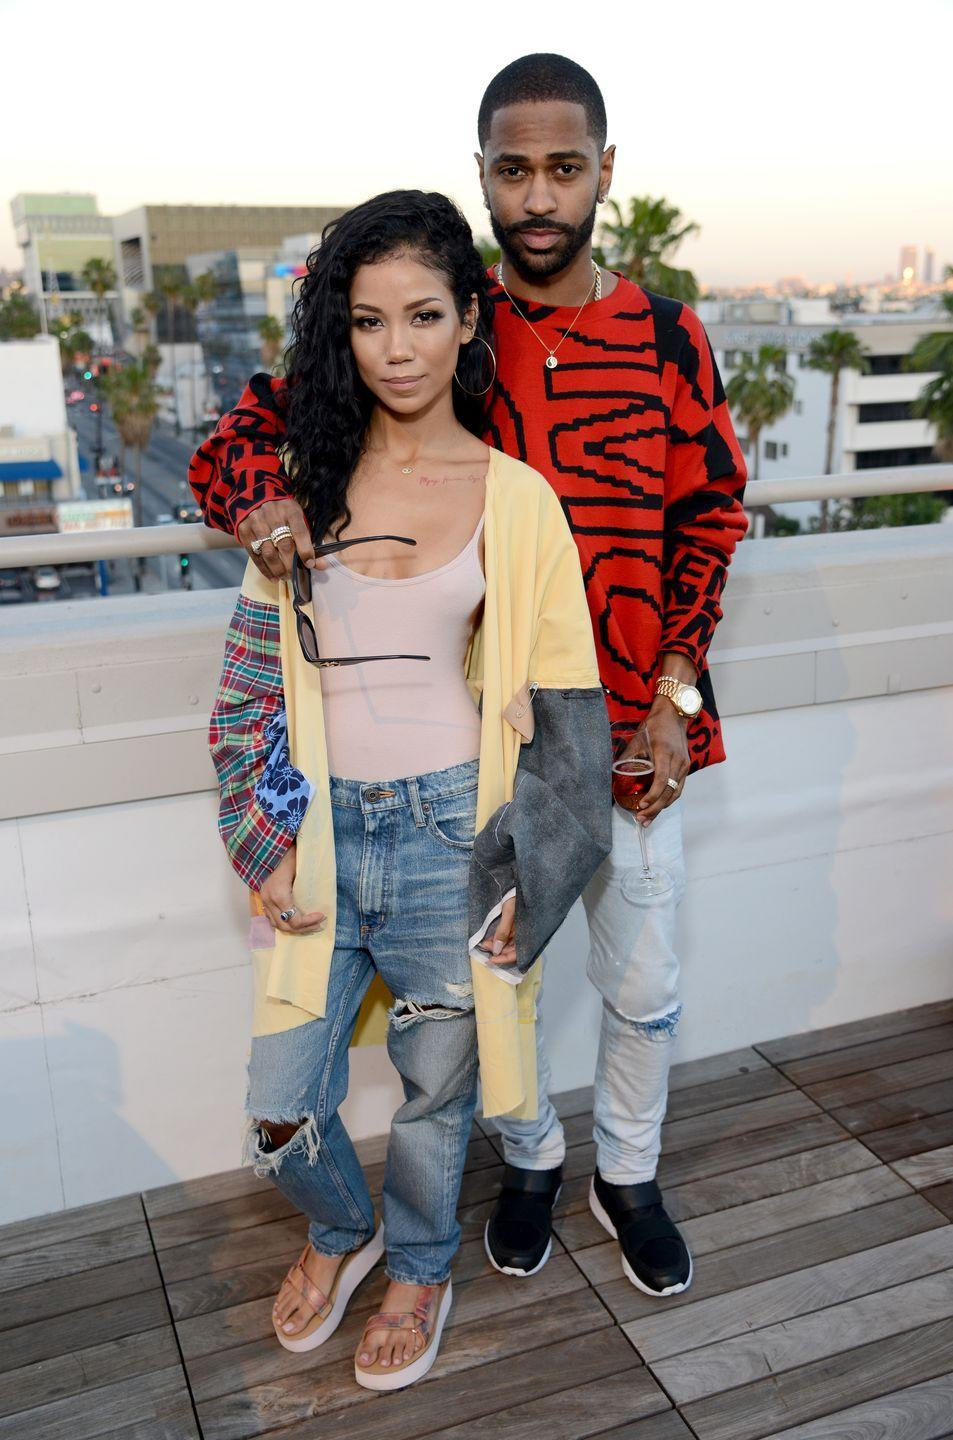 """<p>""""Once again, Jhene stands in front of Big Sean,"""" Donaldson points out. By standing behind Jhené, he's communicating that he's prepared to have her back whenever she needs him to. And his arm around her shoulder (spoiler: body language you'll see from him more than a few times) is how he shows his love. It's a reminder to Jhené that he's there for her no matter what.</p>"""